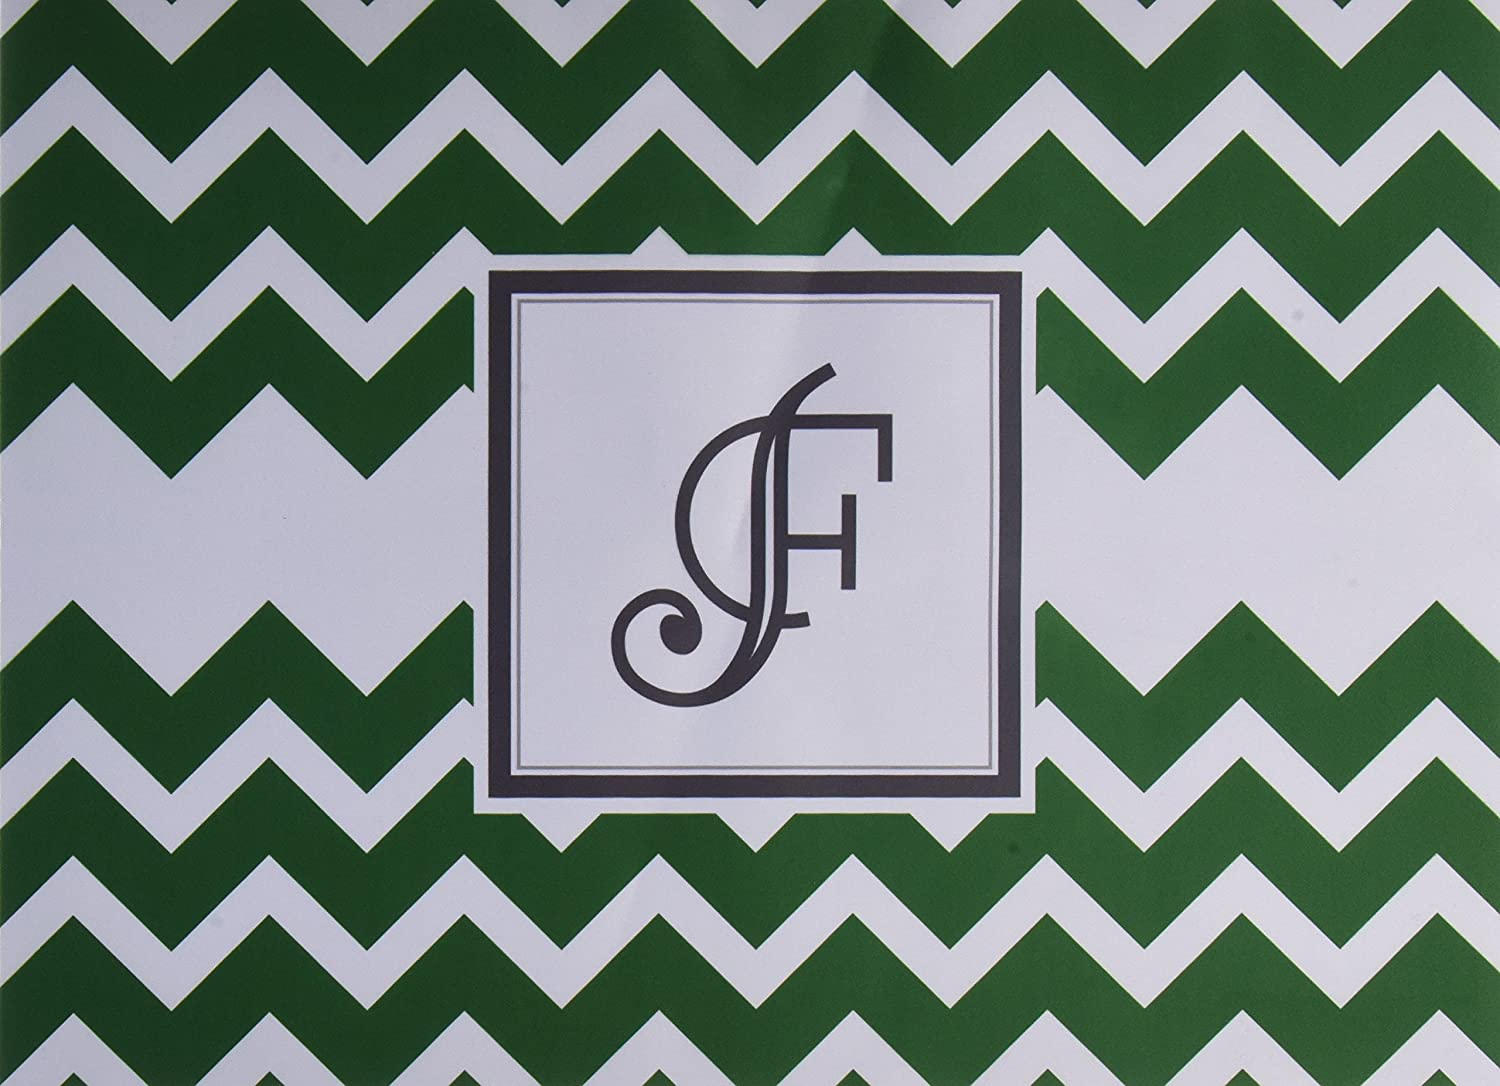 KESS InHouse Kess Original Monogram Chevron Green Letter F  Feeding Mat for Pet Bowl, 18 by 13-Inch